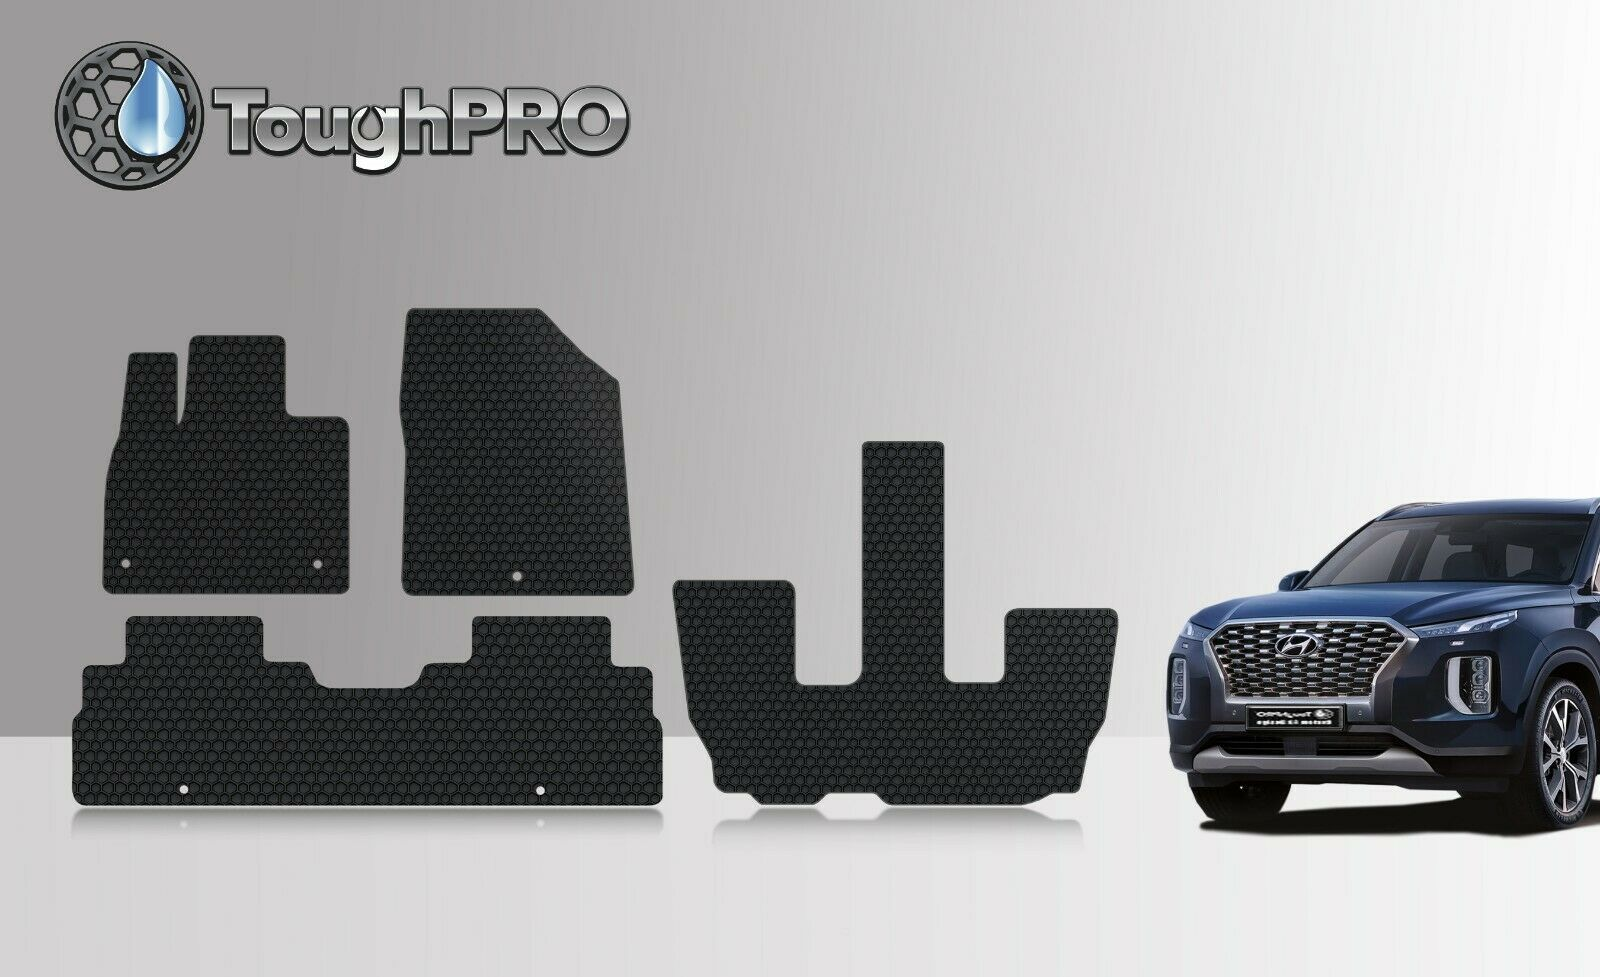 Details About Toughpro Floor Mats 3rd Row Black For Hyundai